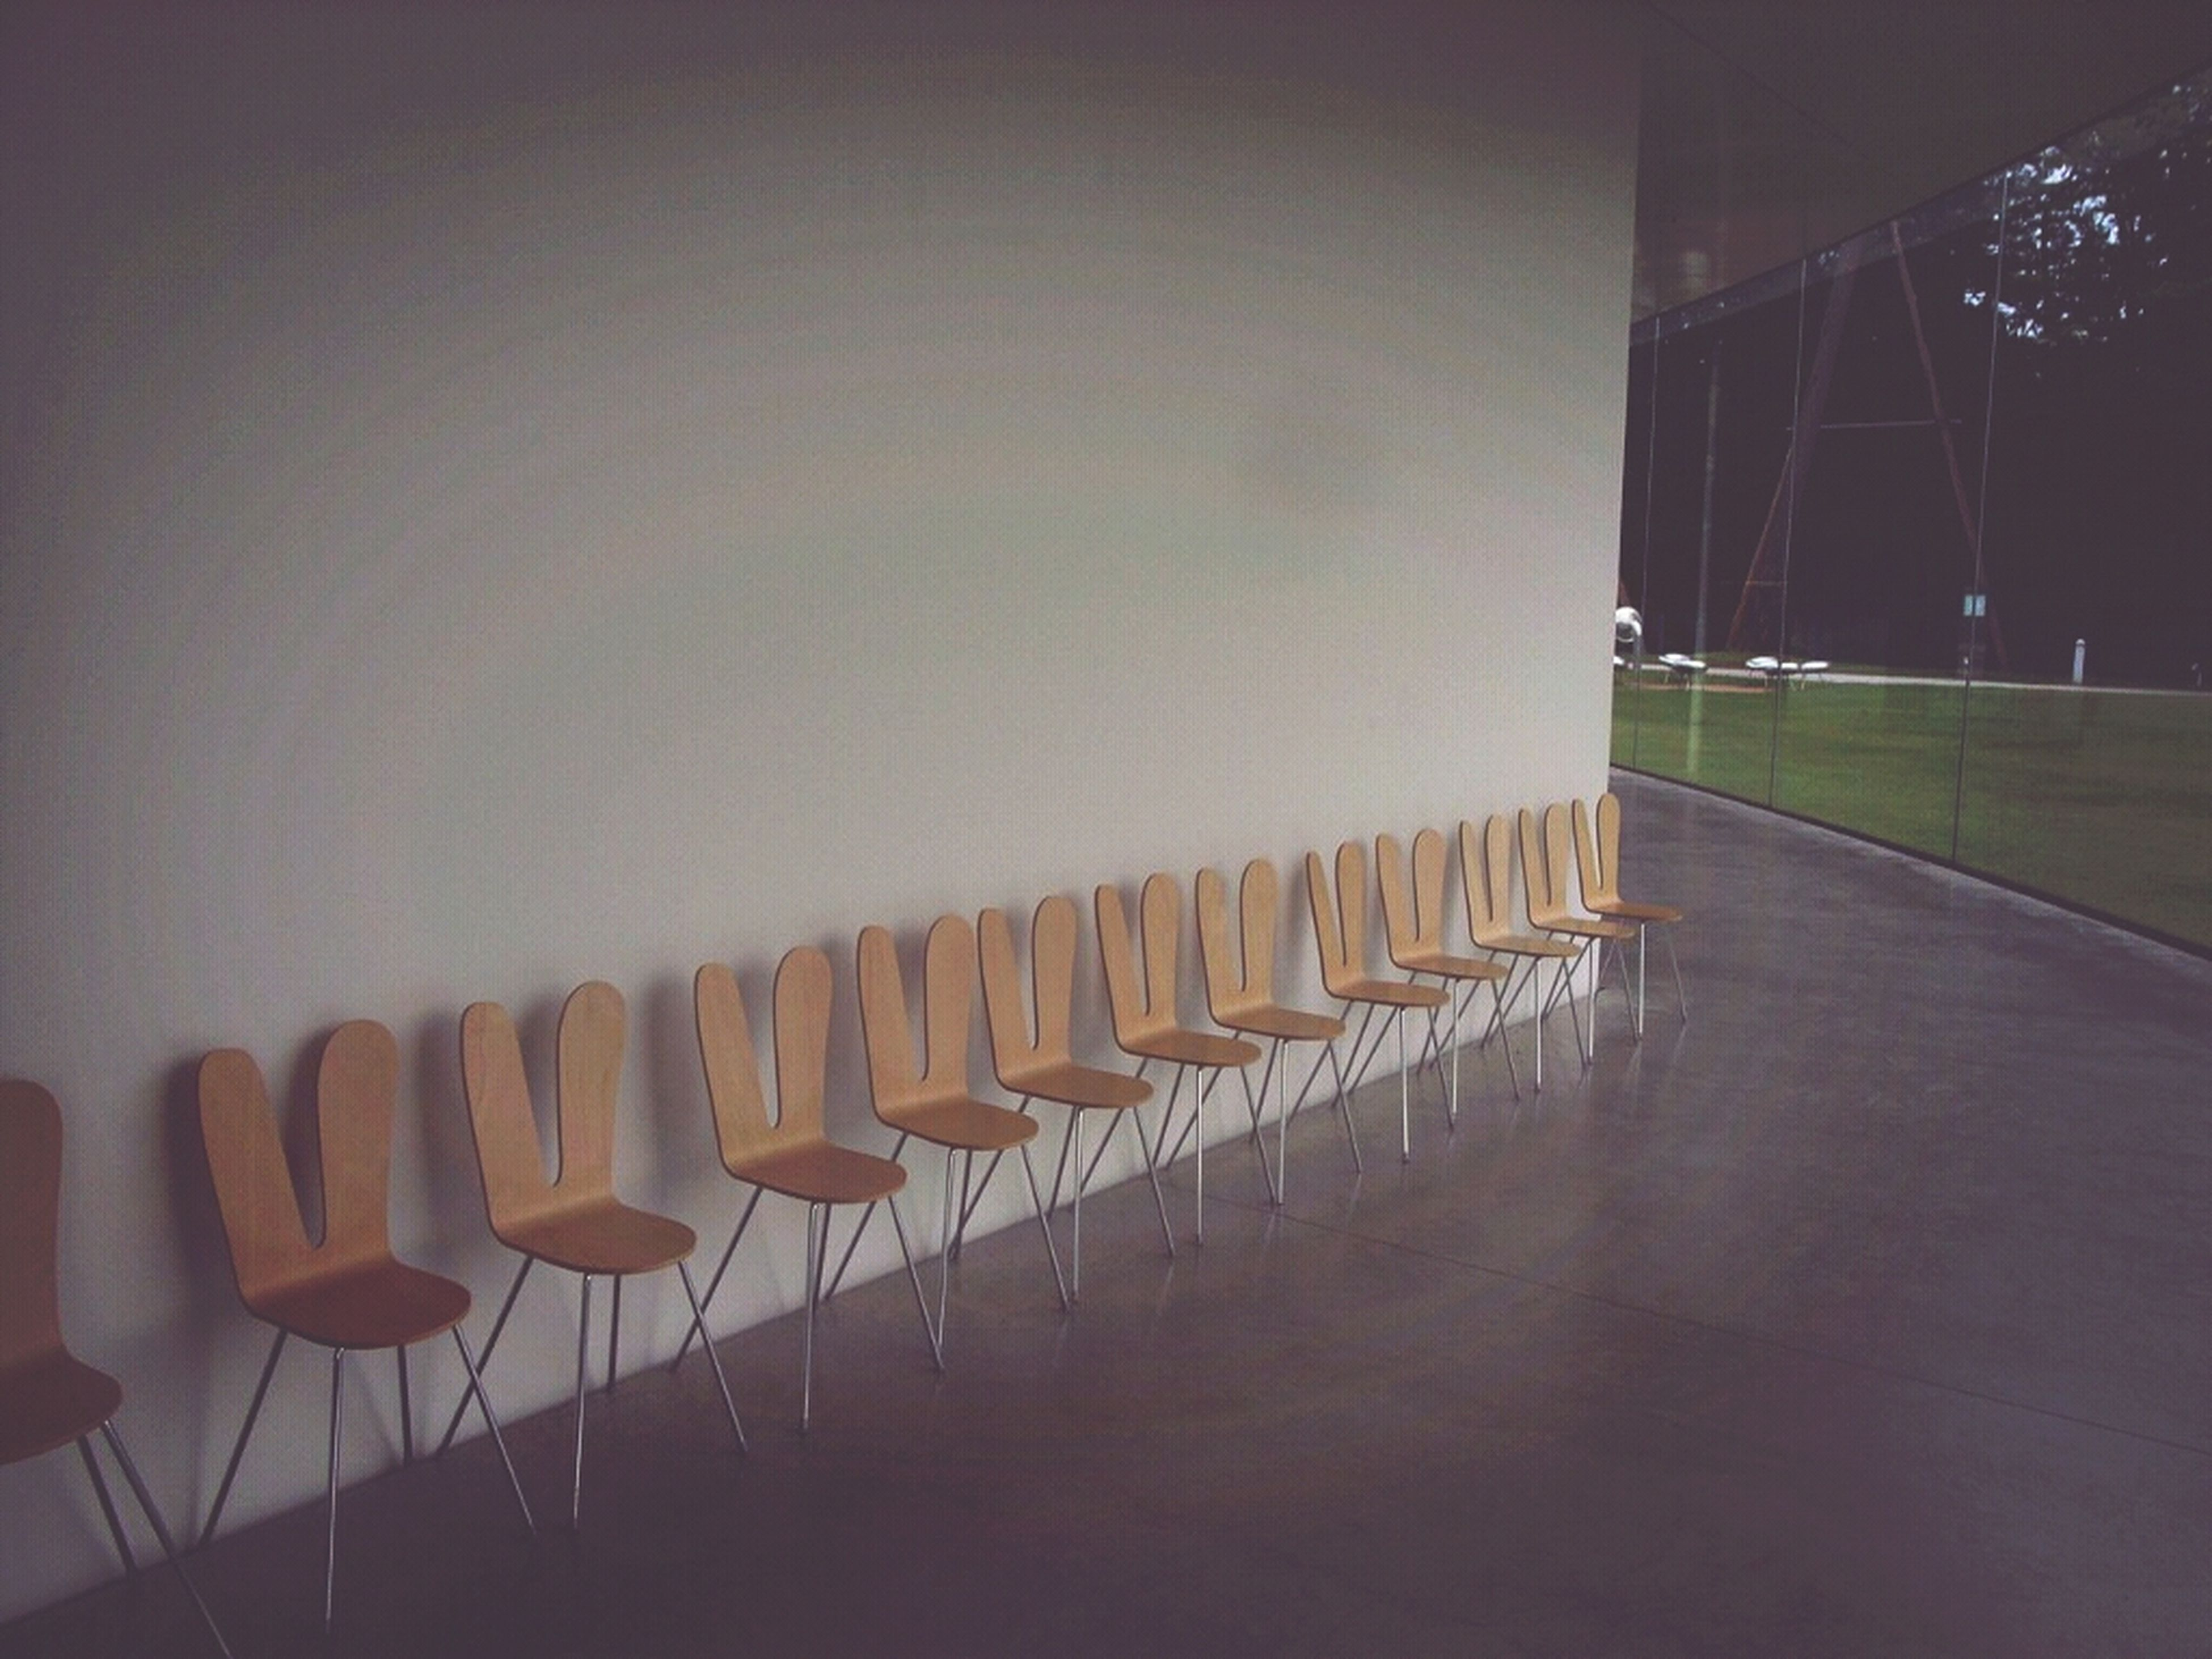 empty, in a row, illuminated, indoors, absence, lighting equipment, chair, built structure, night, architecture, seat, no people, repetition, electric light, copy space, wall - building feature, side by side, hanging, clear sky, shadow